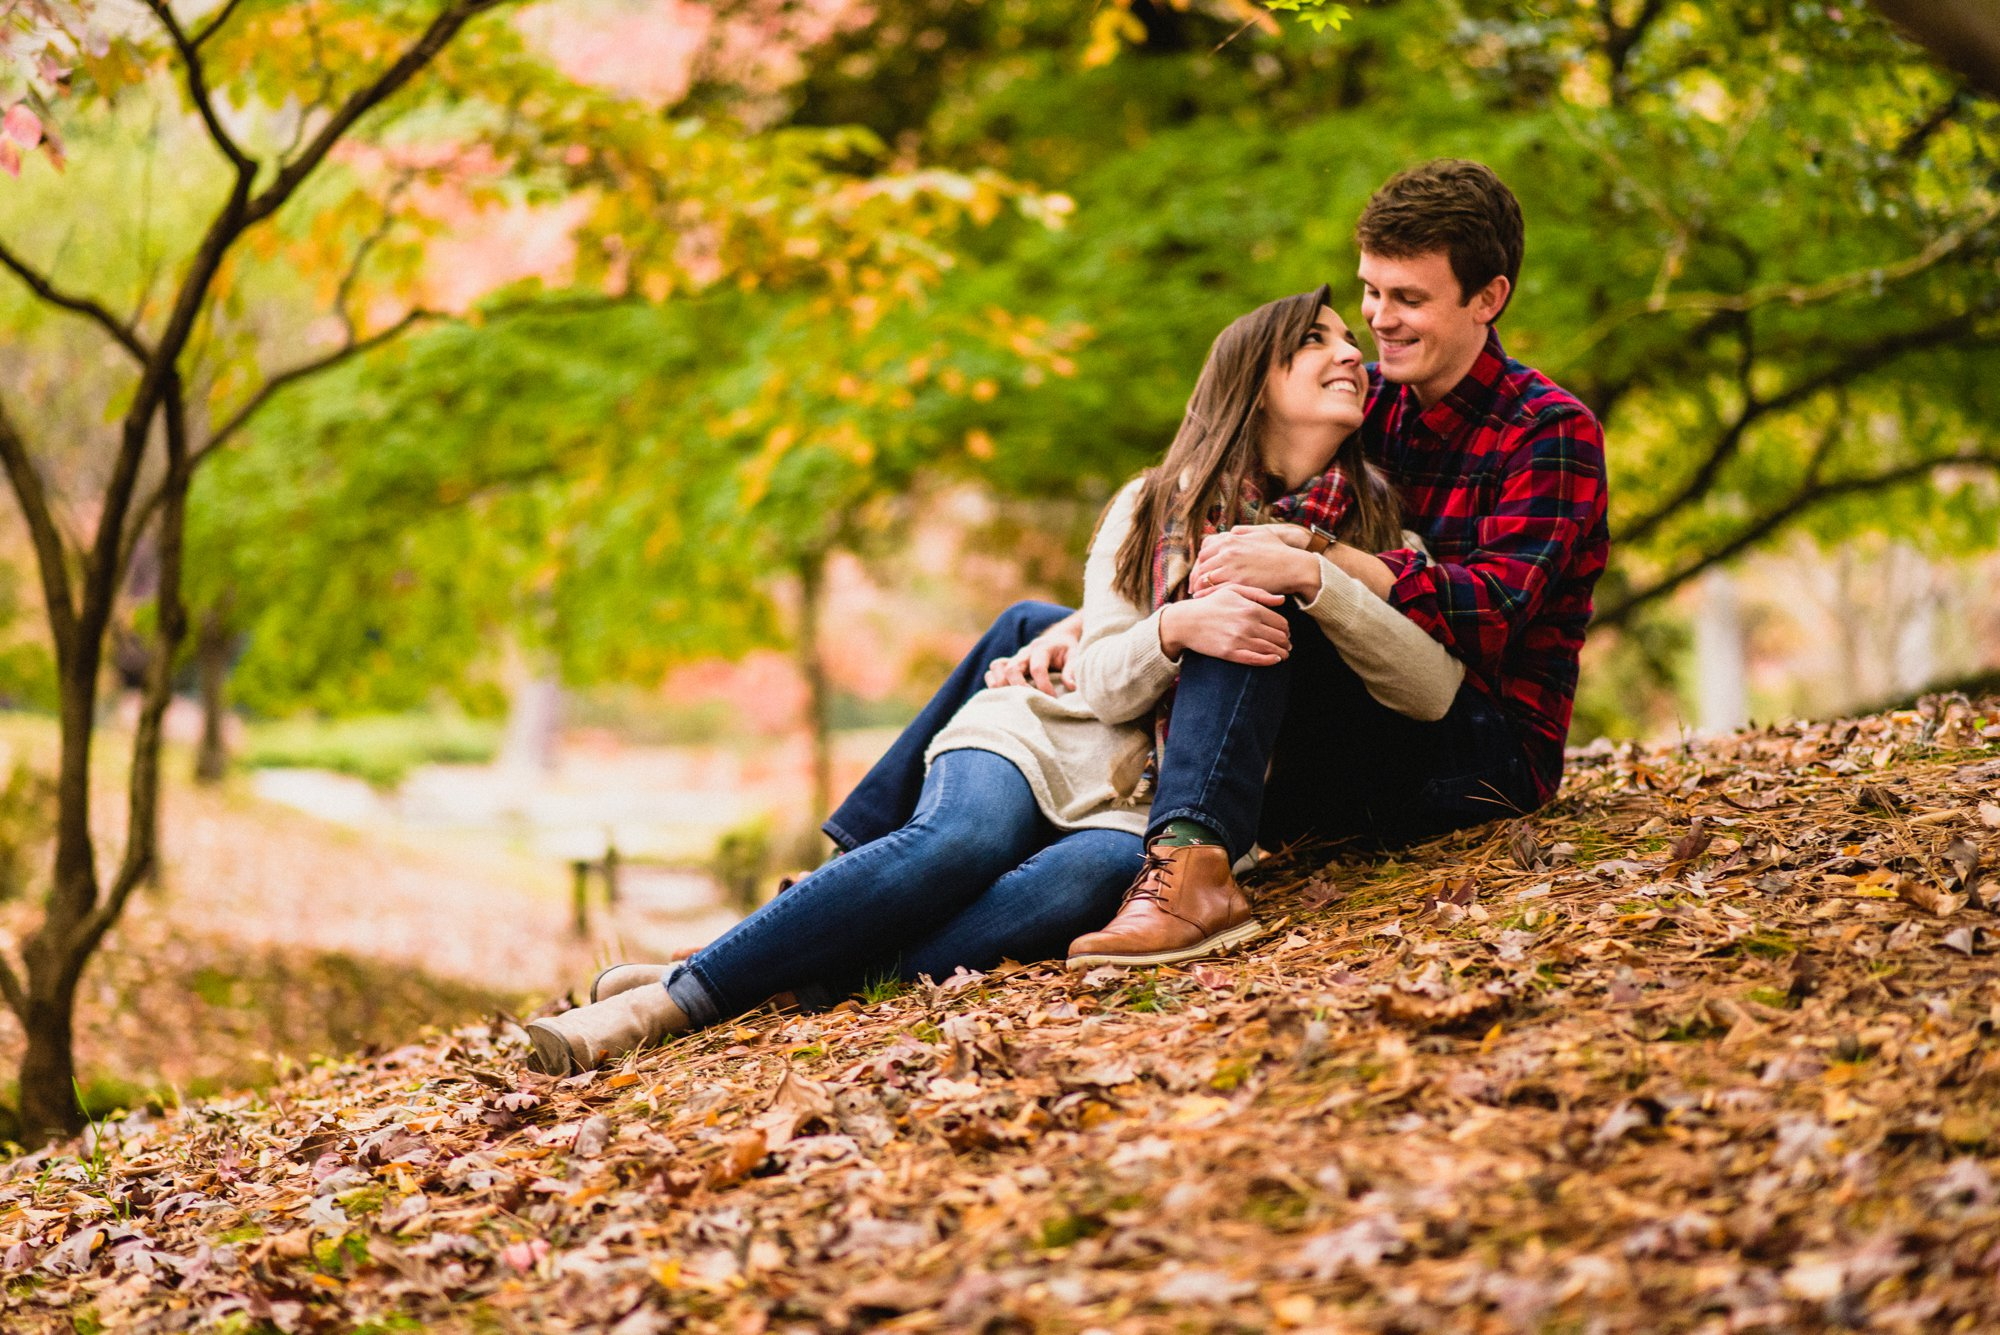 engagement-photography-88-love-stories-29.jpg